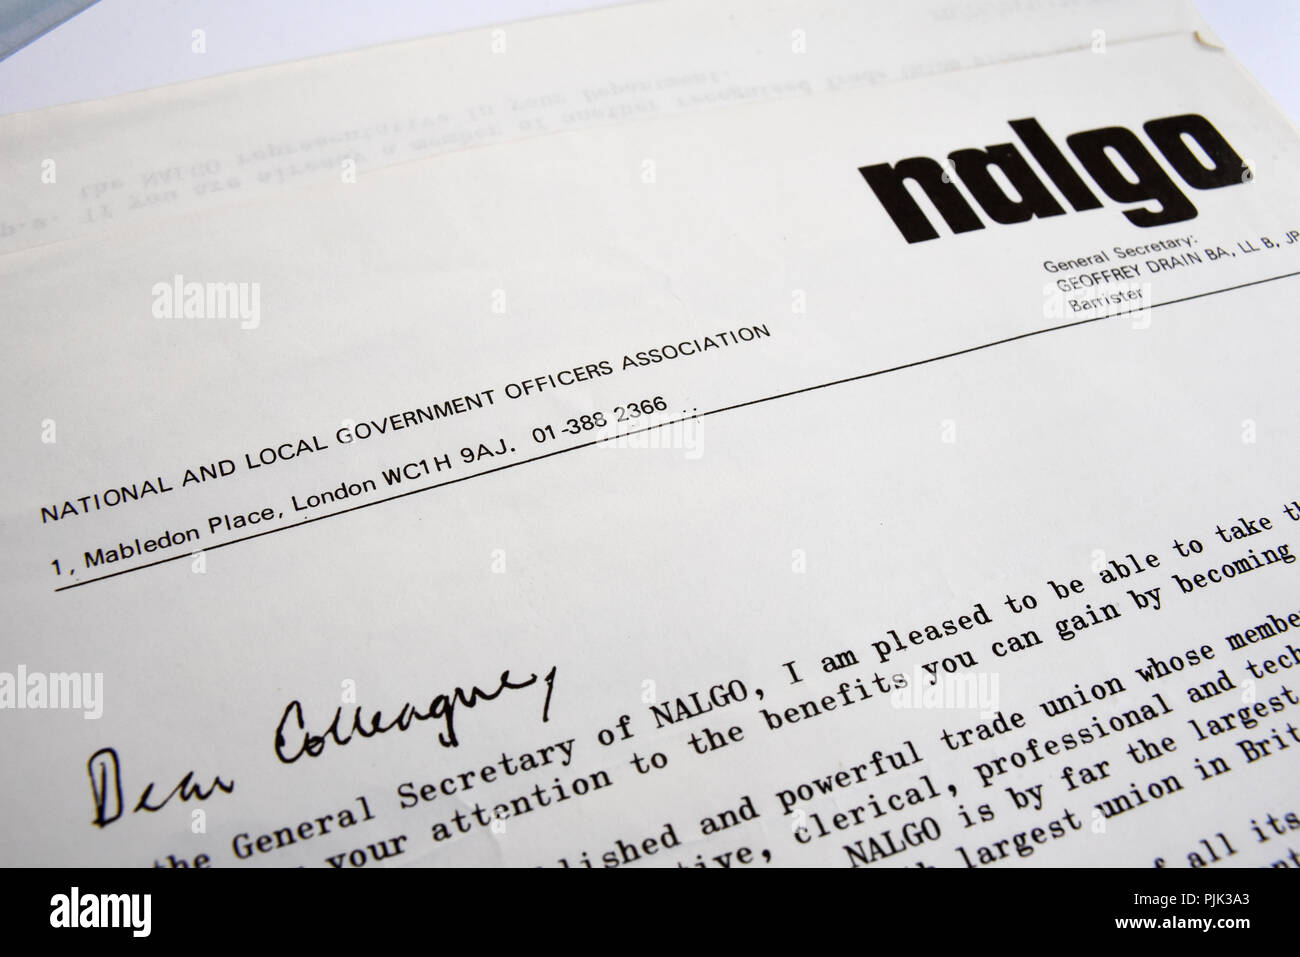 Nalgo union letter head document. National and local government officers association. General secretary Geoffrey Drain. Trade Union became UNISON - Stock Image